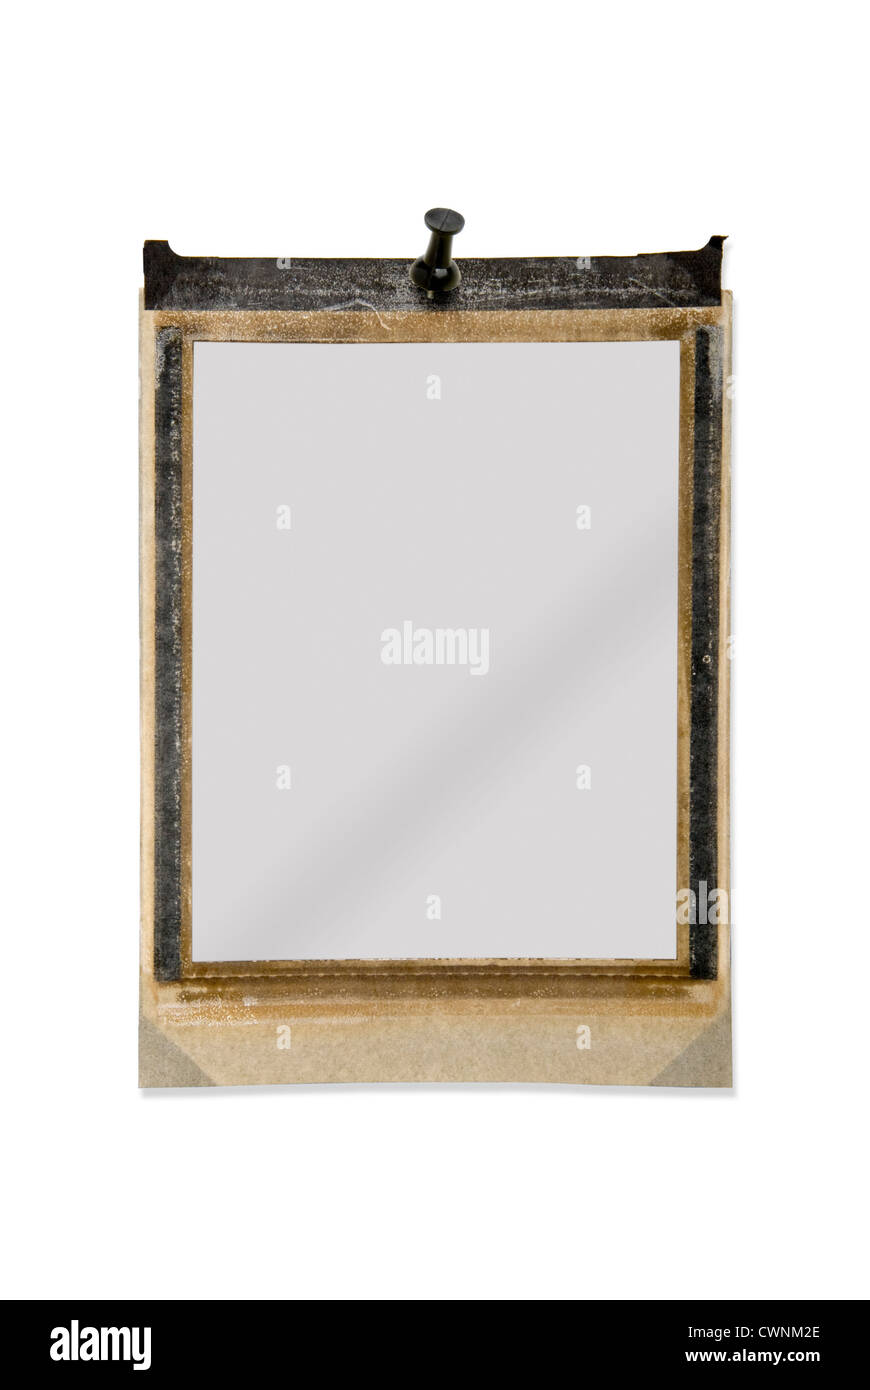 Empty polaroid frame, with pin, isolated on 100% white background ...